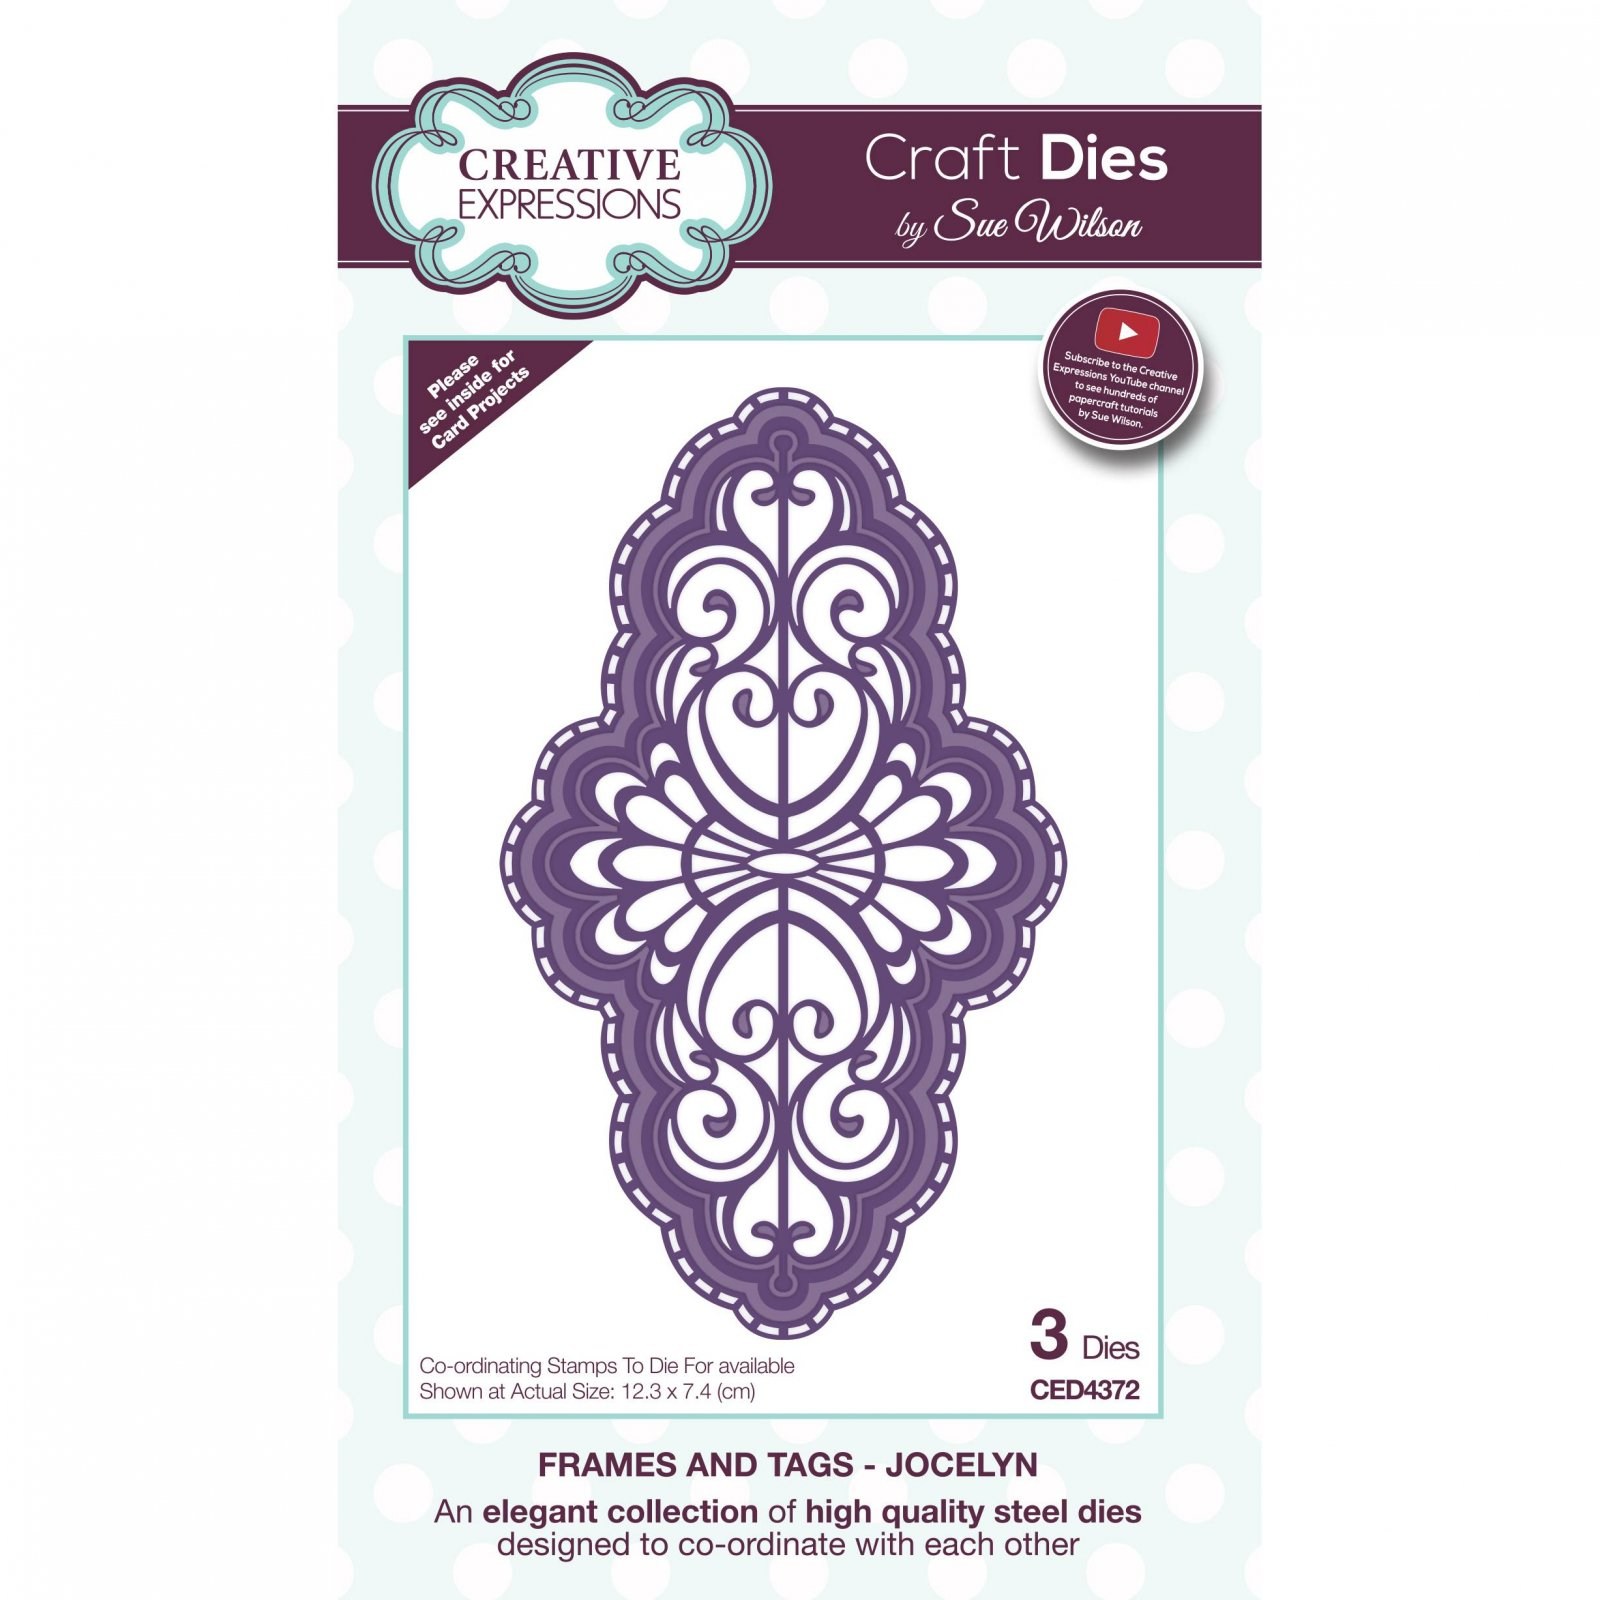 Creative Expressions Craft Dies By Sue Wilson-Frames & Tags-Jocelyn